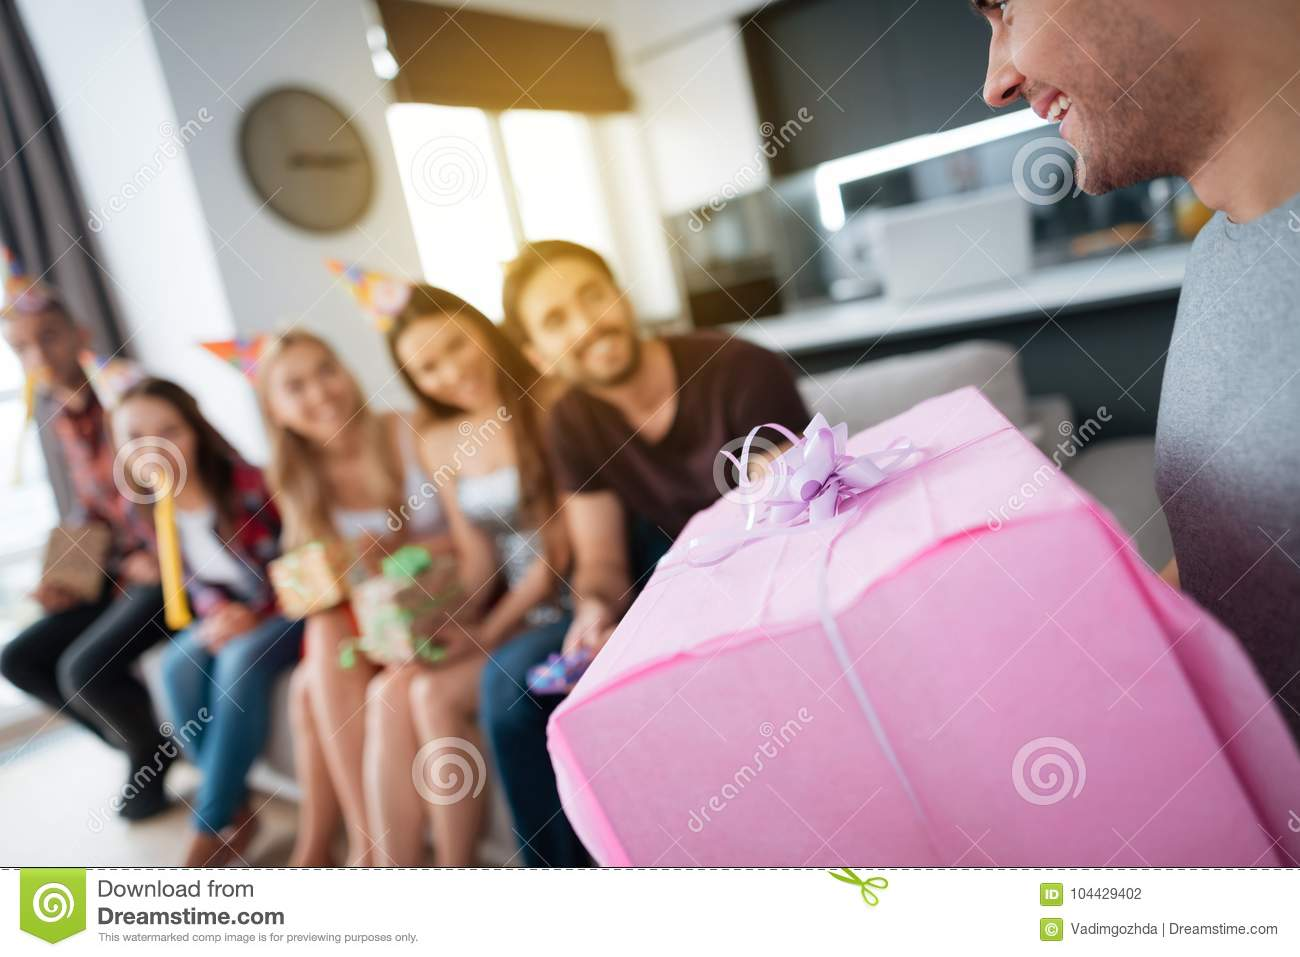 What to give for a birthday girl 64